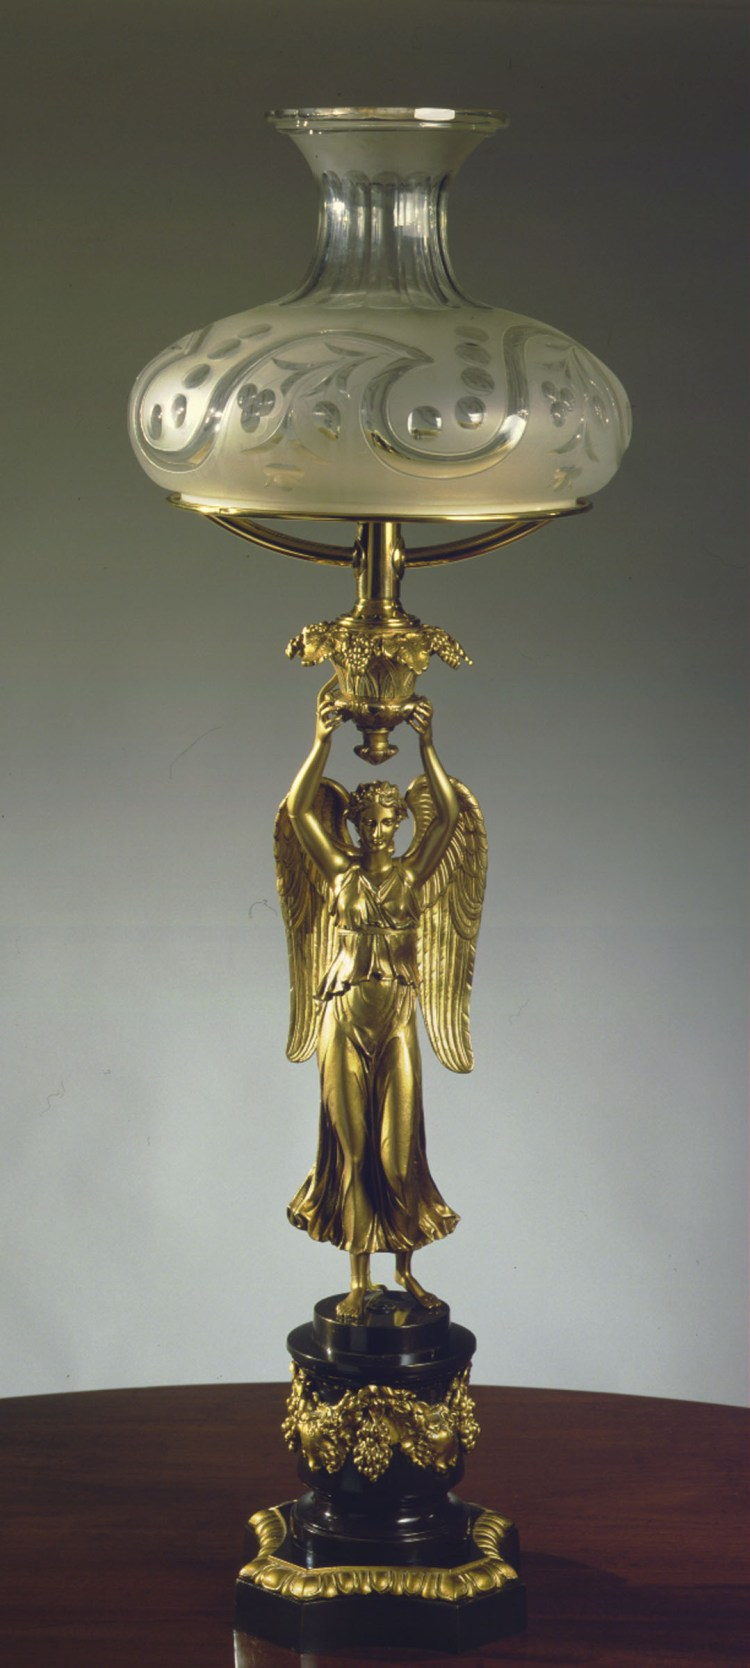 Figural Sinumbra Lamp: The blown and cut glass shade on a flattened doughnut-shaped font held above a figure of winged Nike, Greek goddess of victory, on a stepped cylindrical pedestal base decorated with swags and garlands on a molded polygonal base.  H: 37 ¼""